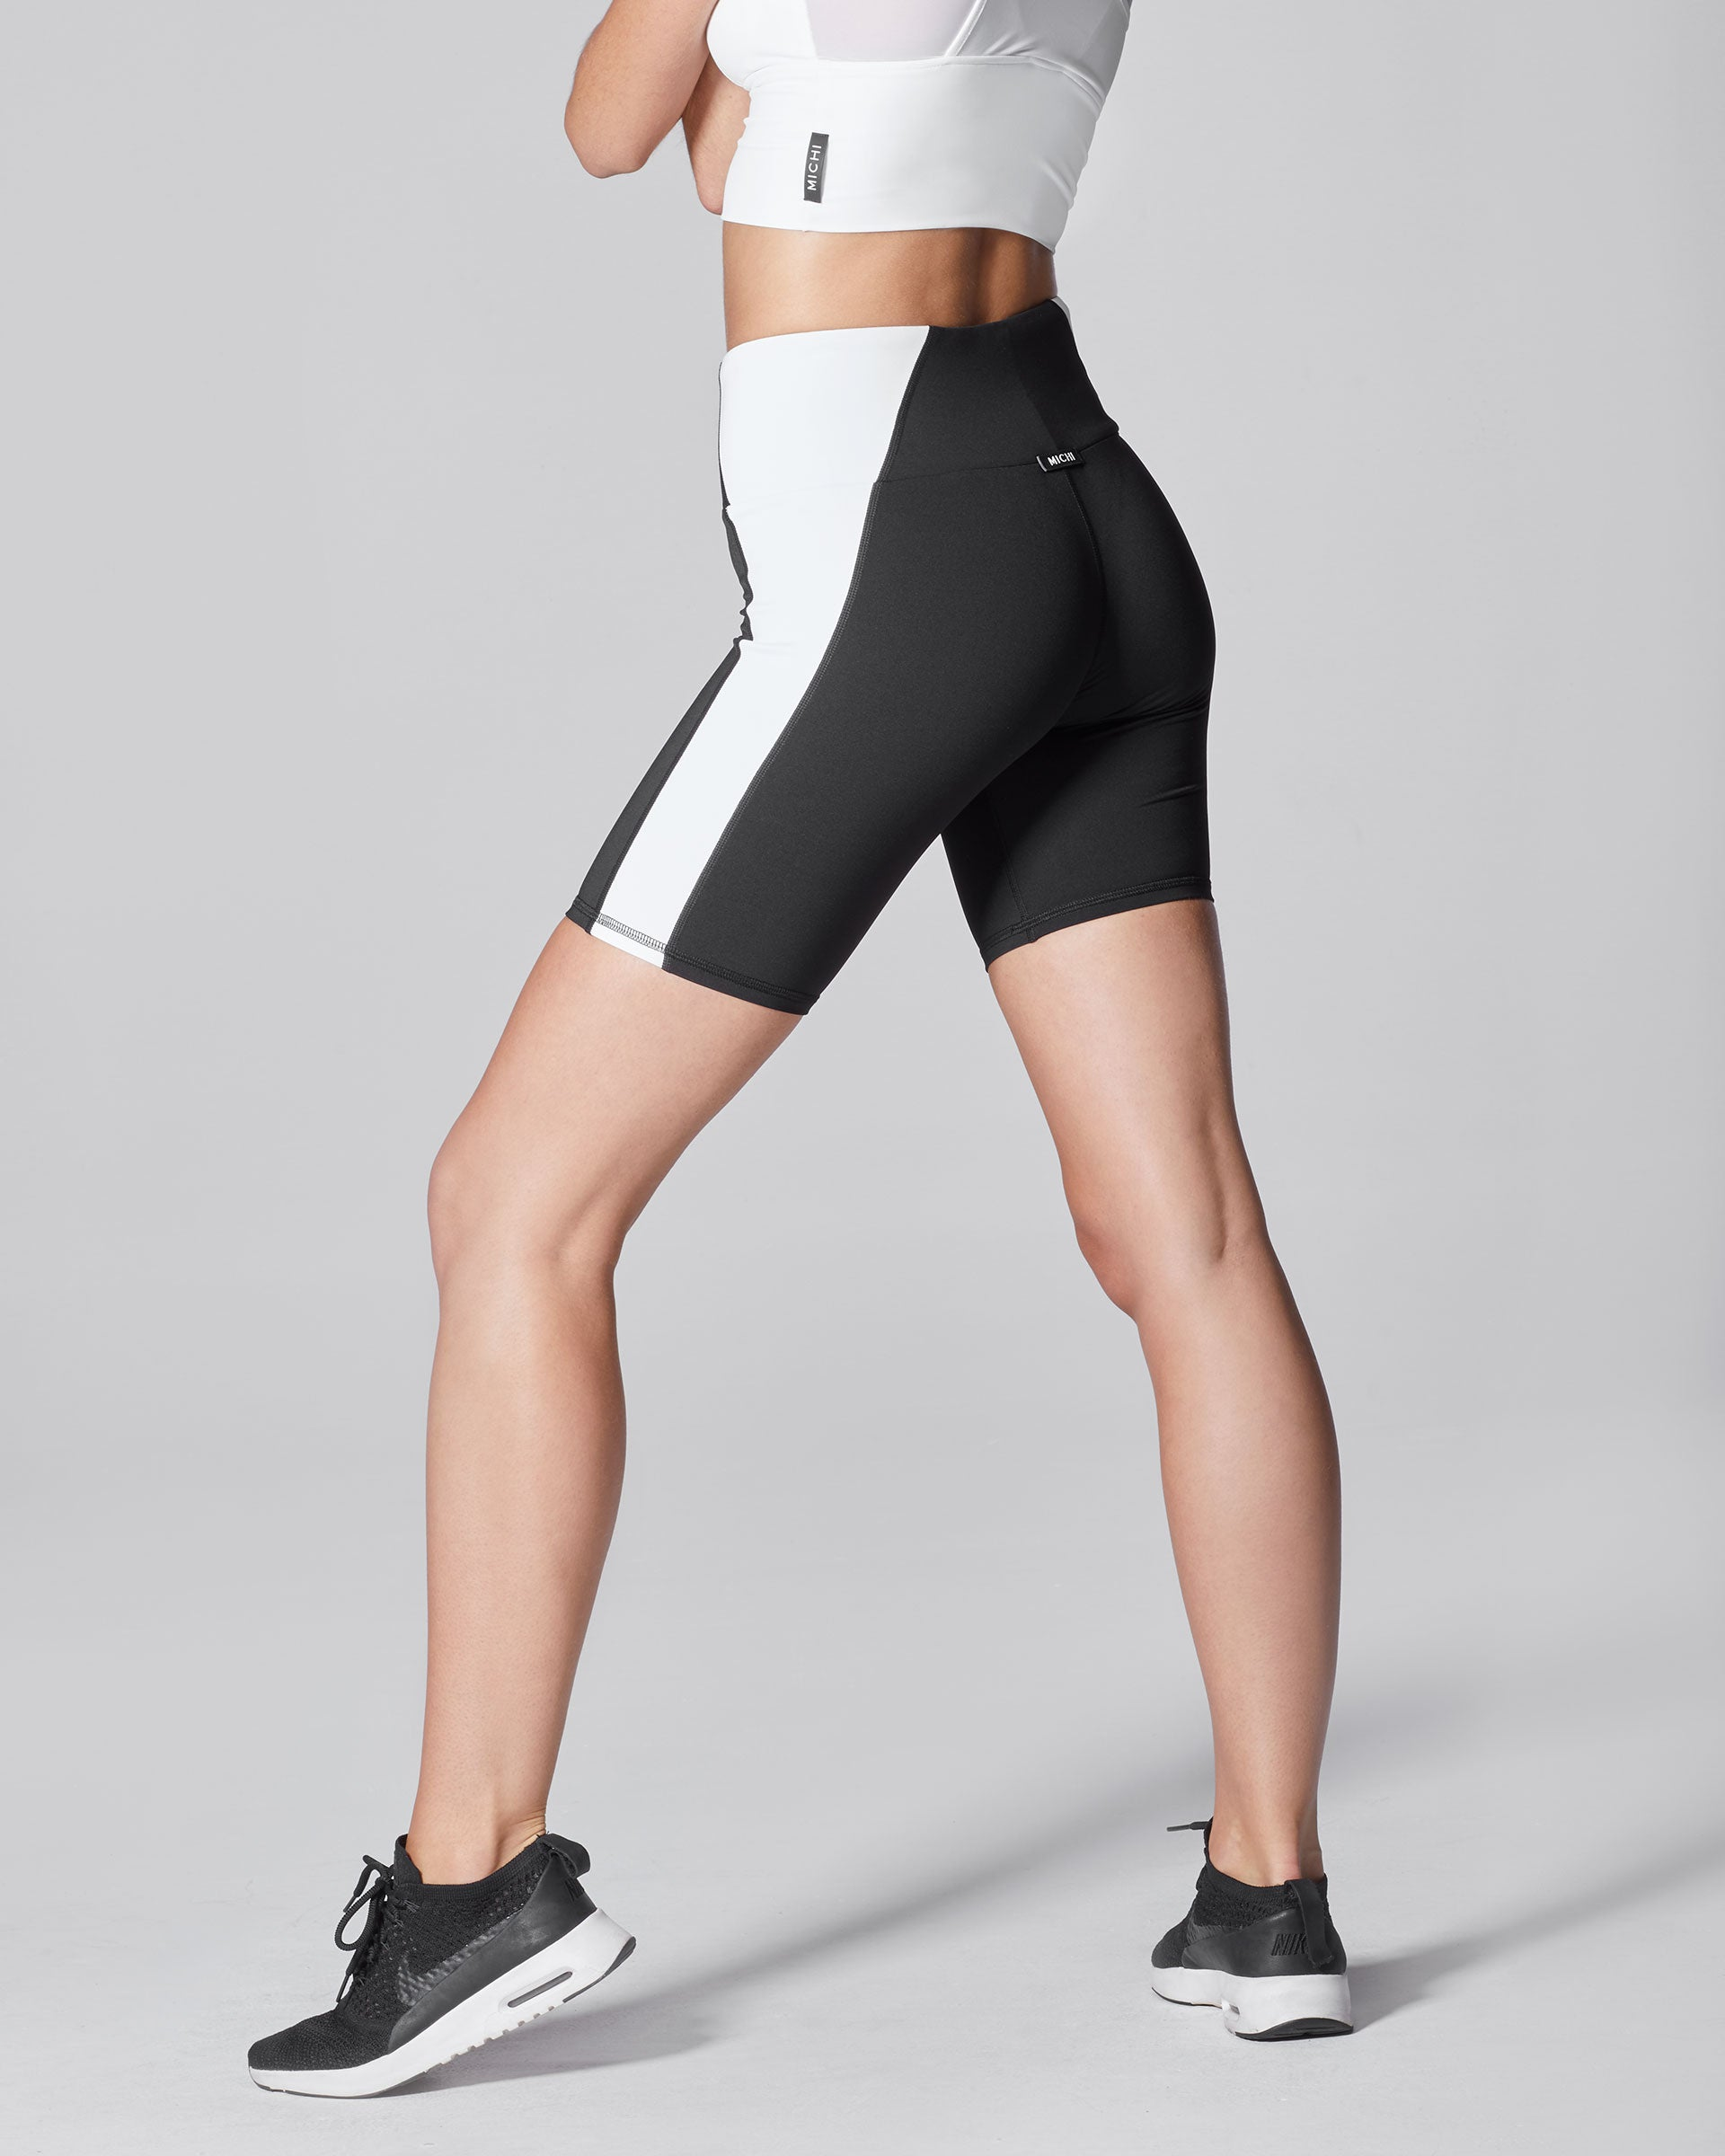 vibe-bike-short-black-white